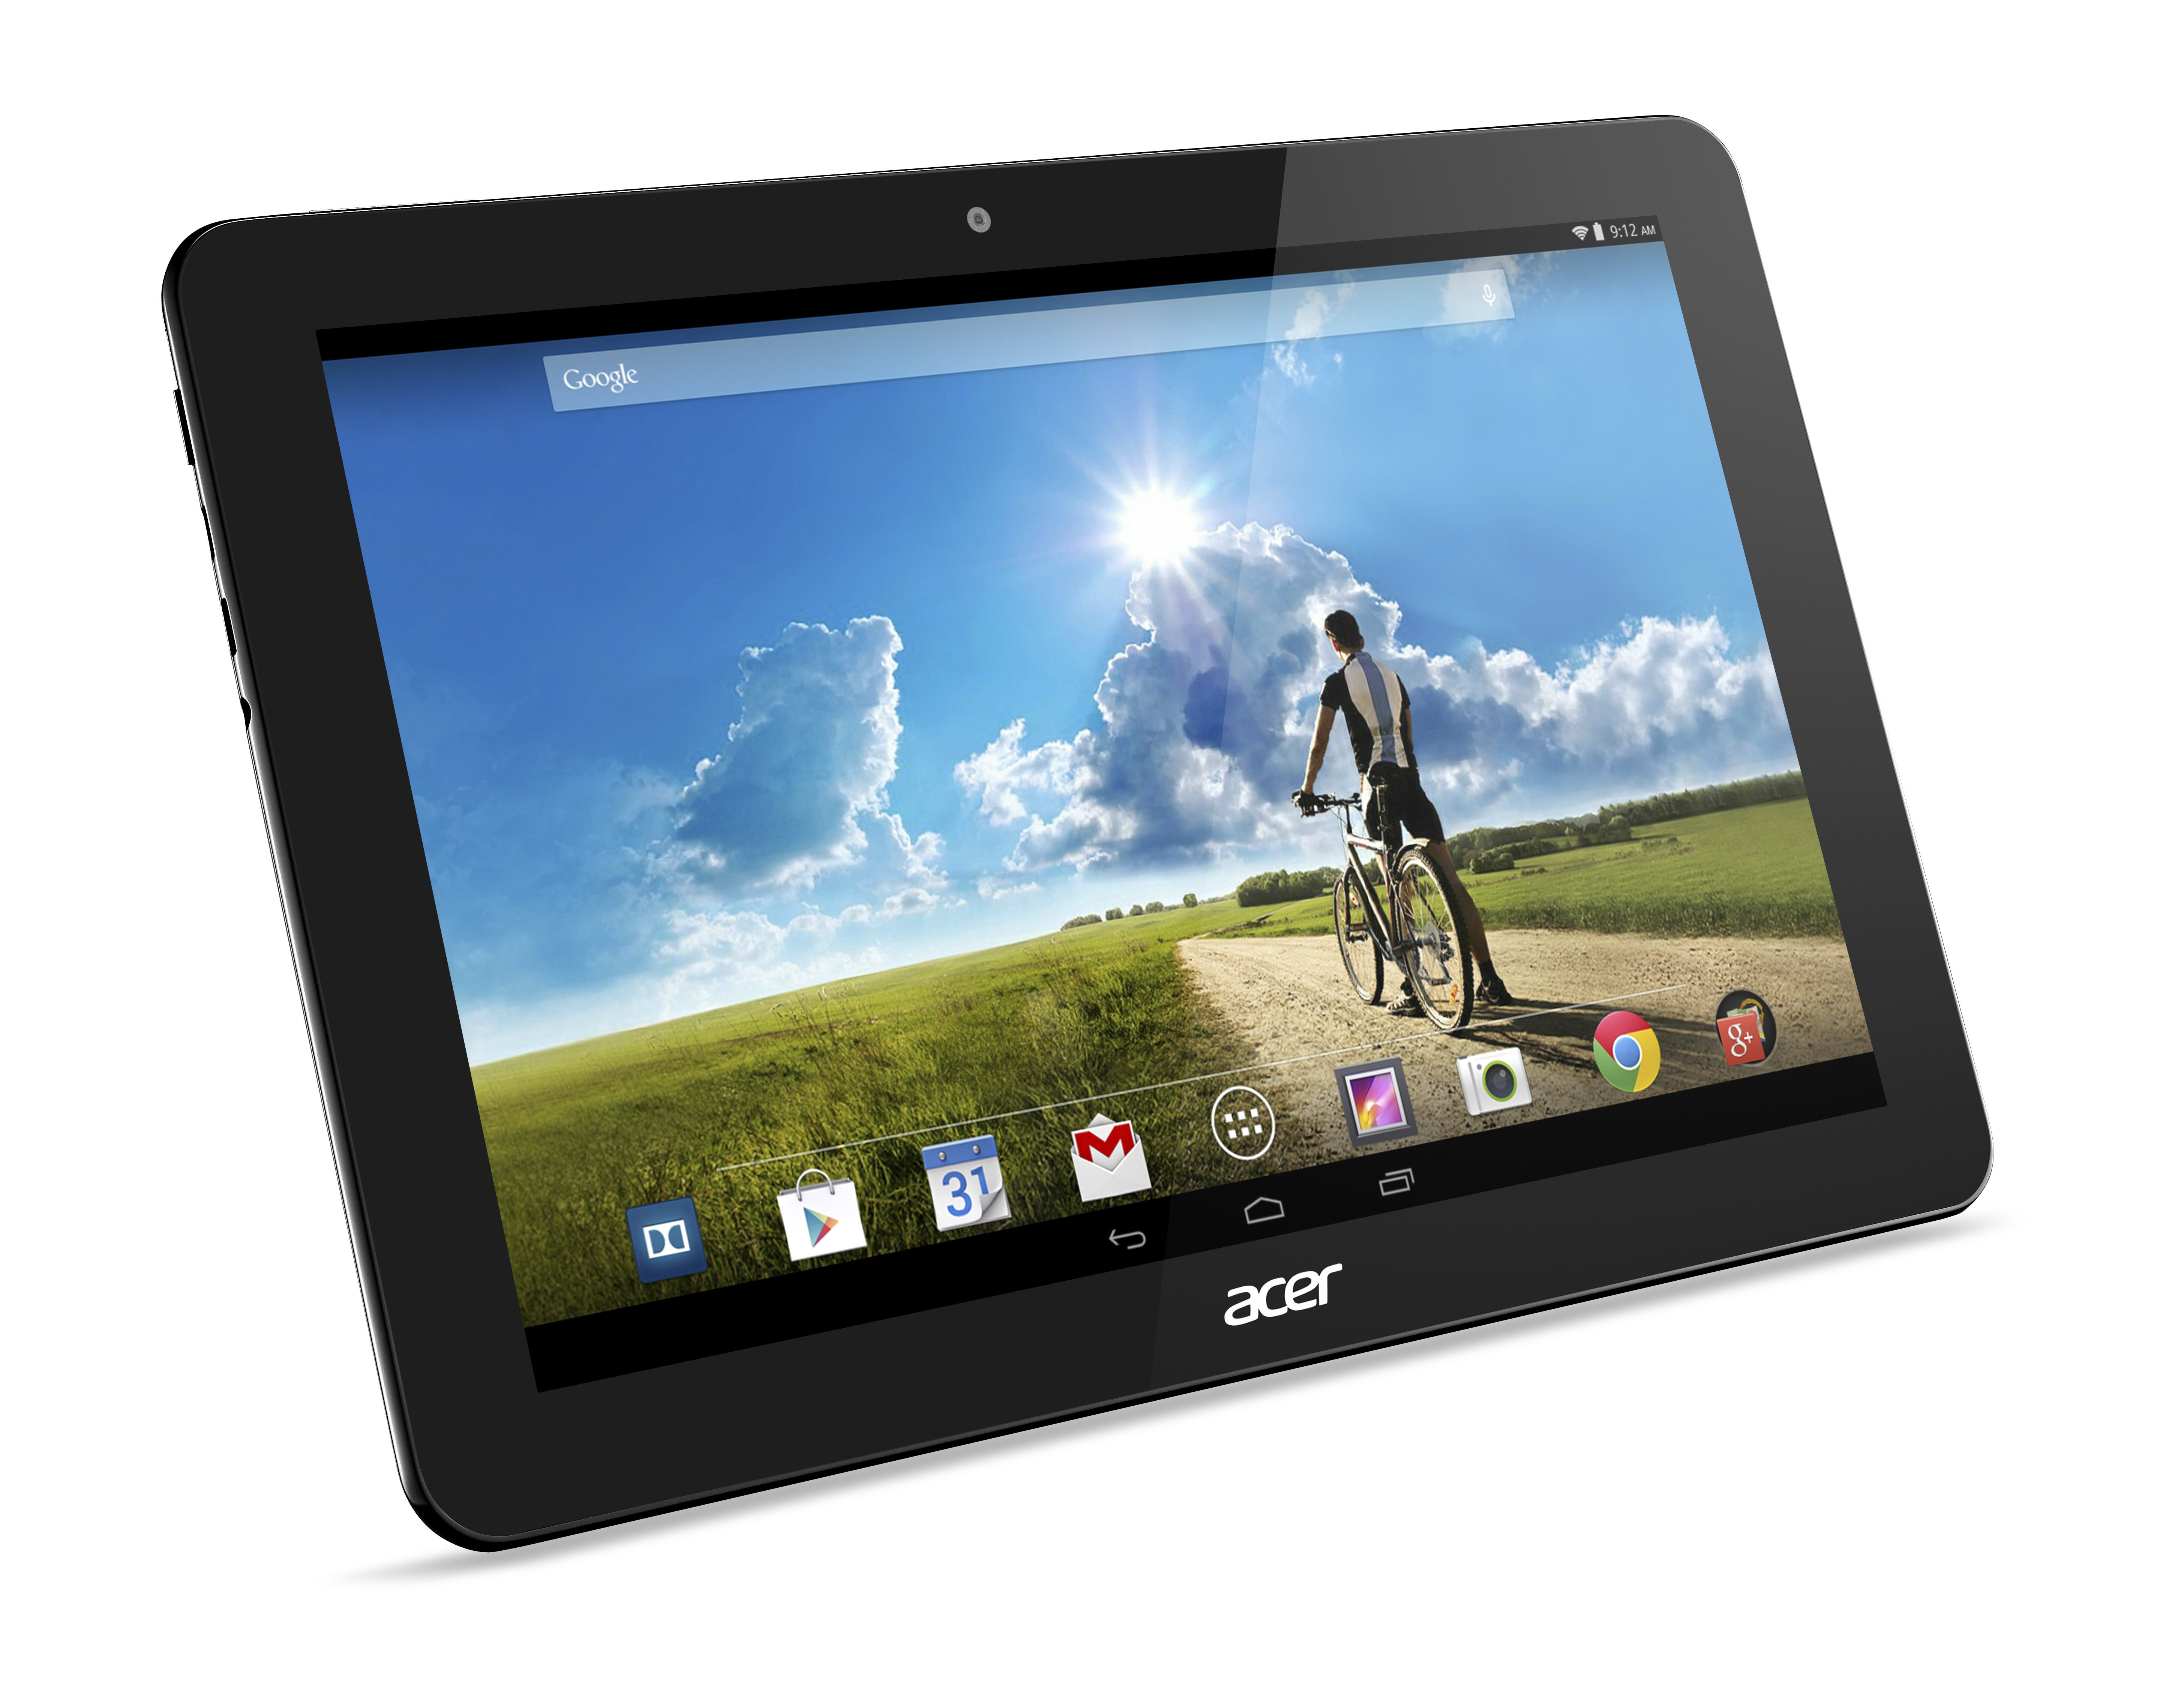 acer launches 150 windows tablet upgrades android. Black Bedroom Furniture Sets. Home Design Ideas